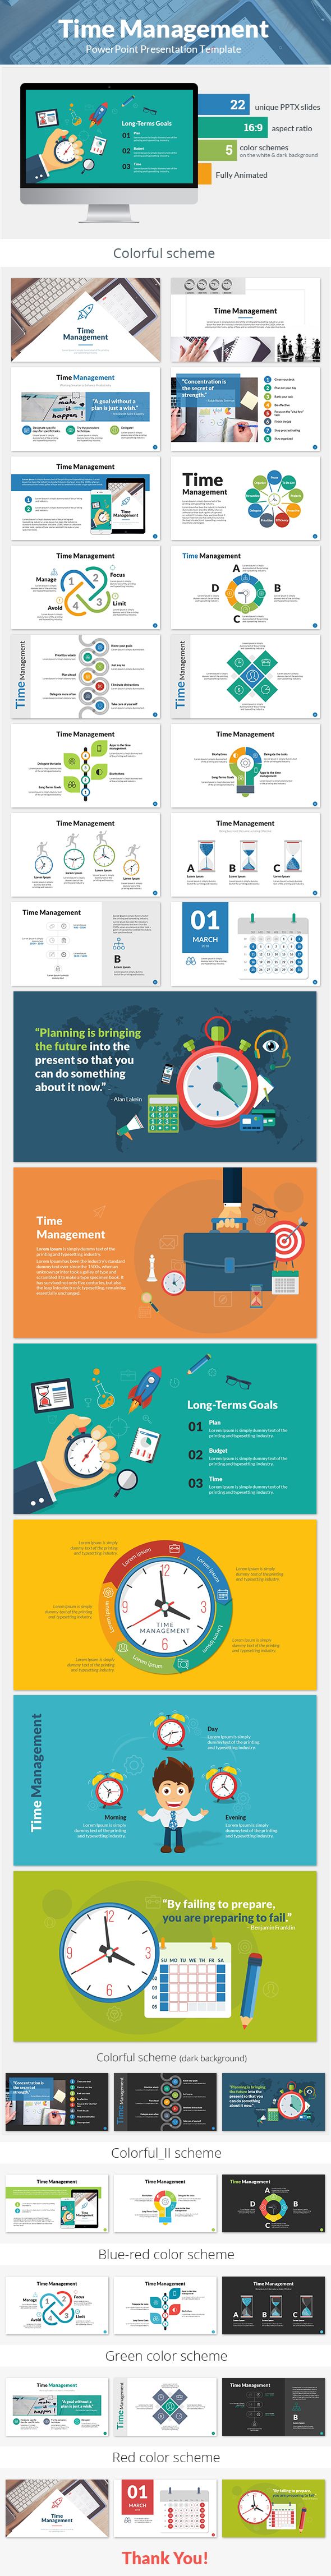 Time Management PowerPoint Presentation Template - PowerPoint Templates Presentation Templates